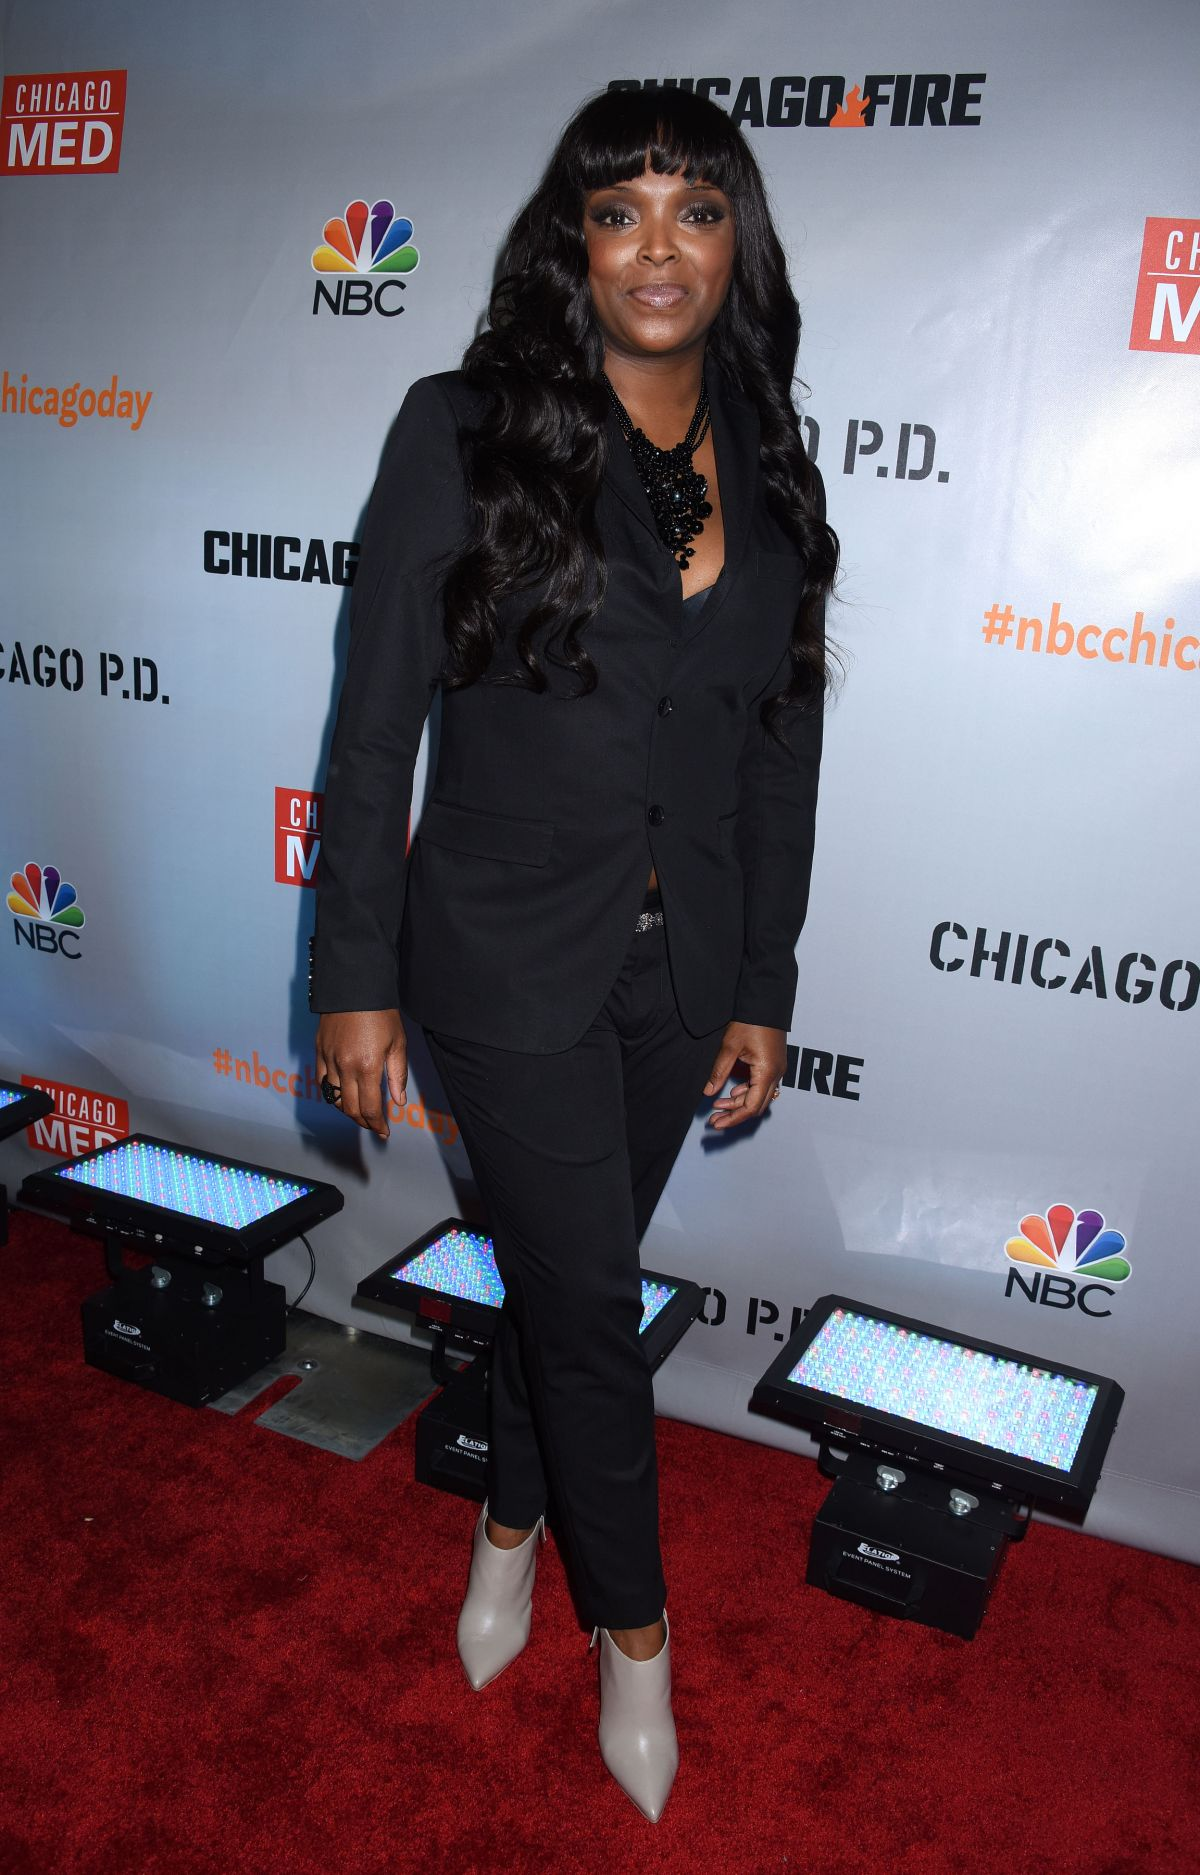 MARLYNE BARRETT at Chicago Fire, Chicago P.D. and Chicago Med Premiere in Chicago 11/09/2015